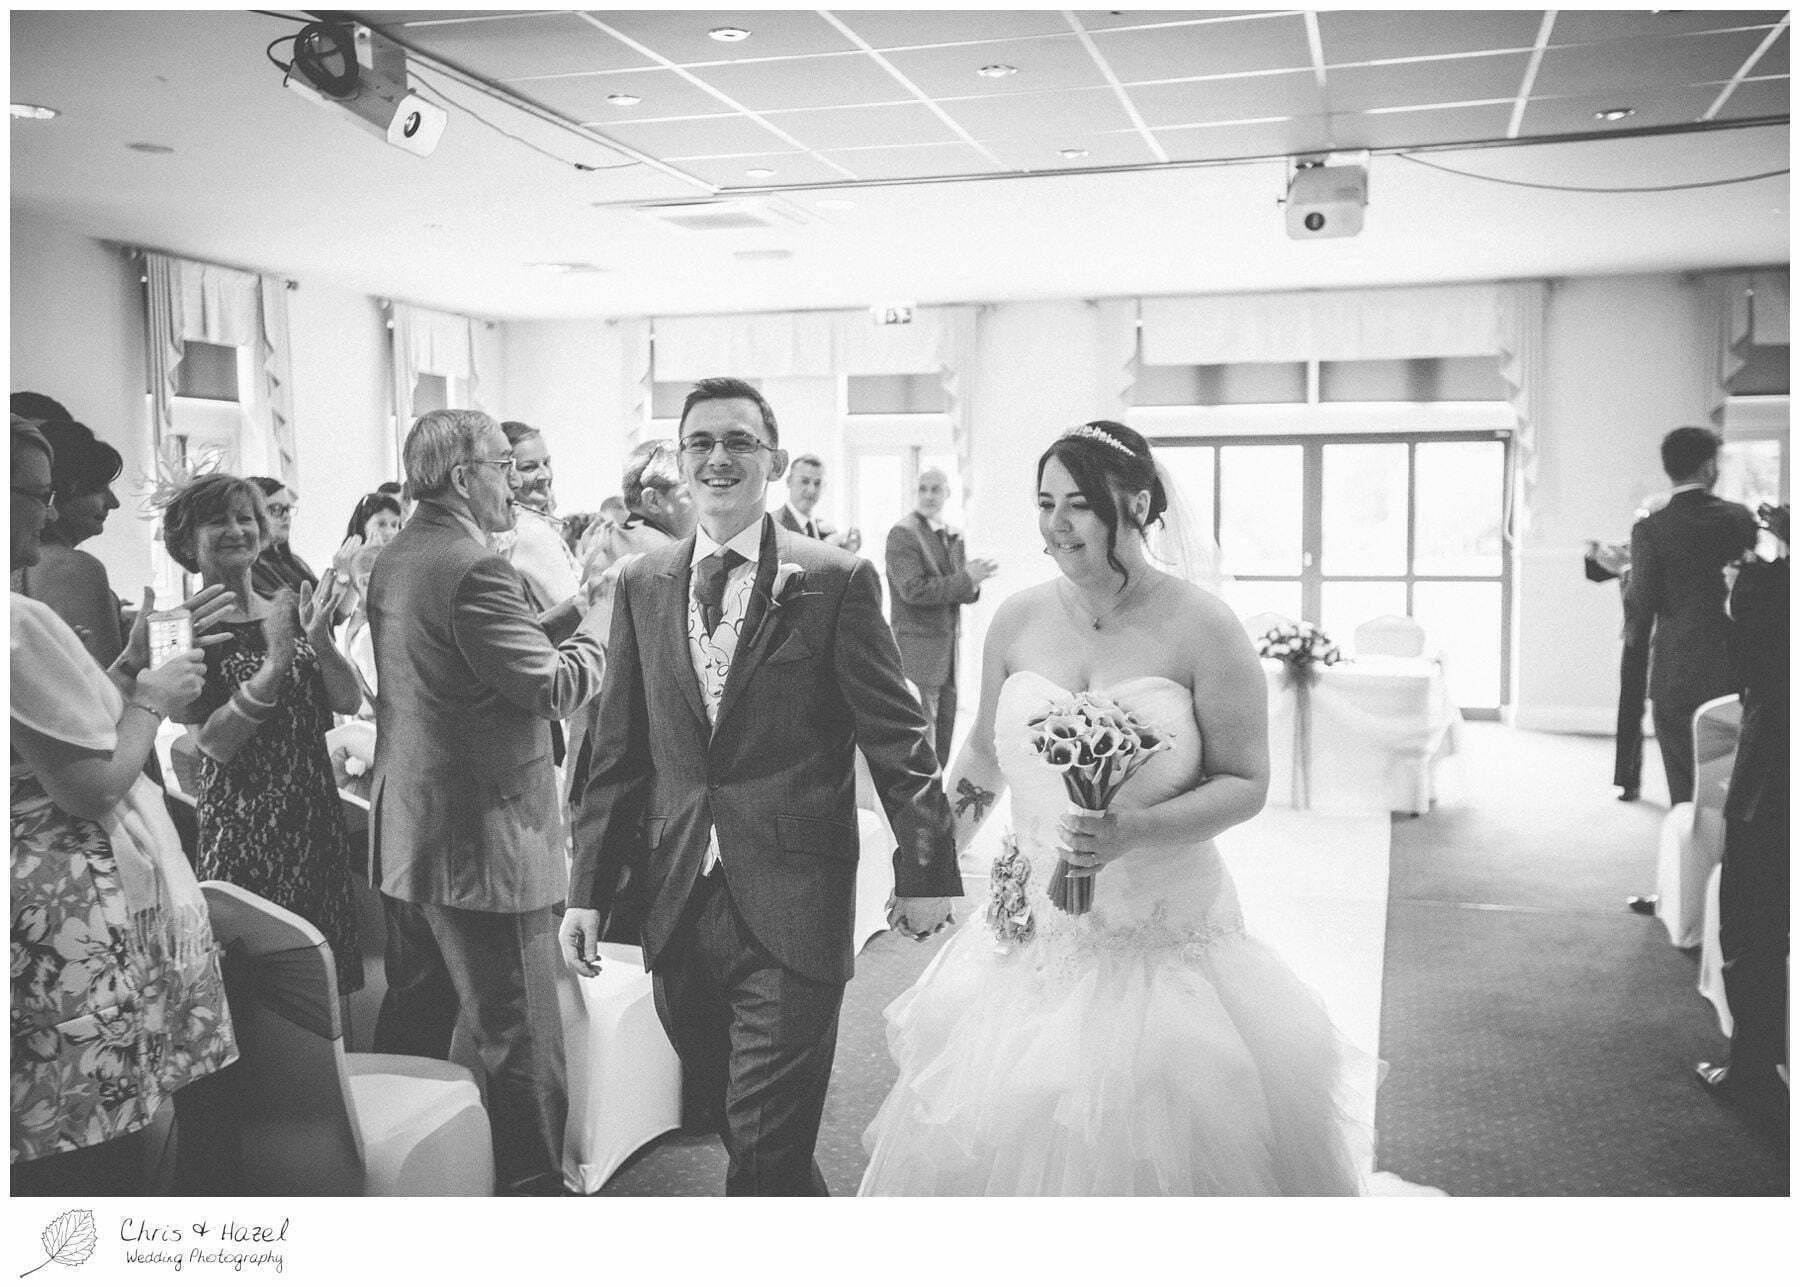 bride and from walking up the aisle, bagden hall wedding venue, documentary wedding photography, denny dale, huddersfield, Wedding Photographer, Bagden Hall, Wedding Photography, Chris and Hazel Wedding Photography, Alex tomenson, Vicky hunt